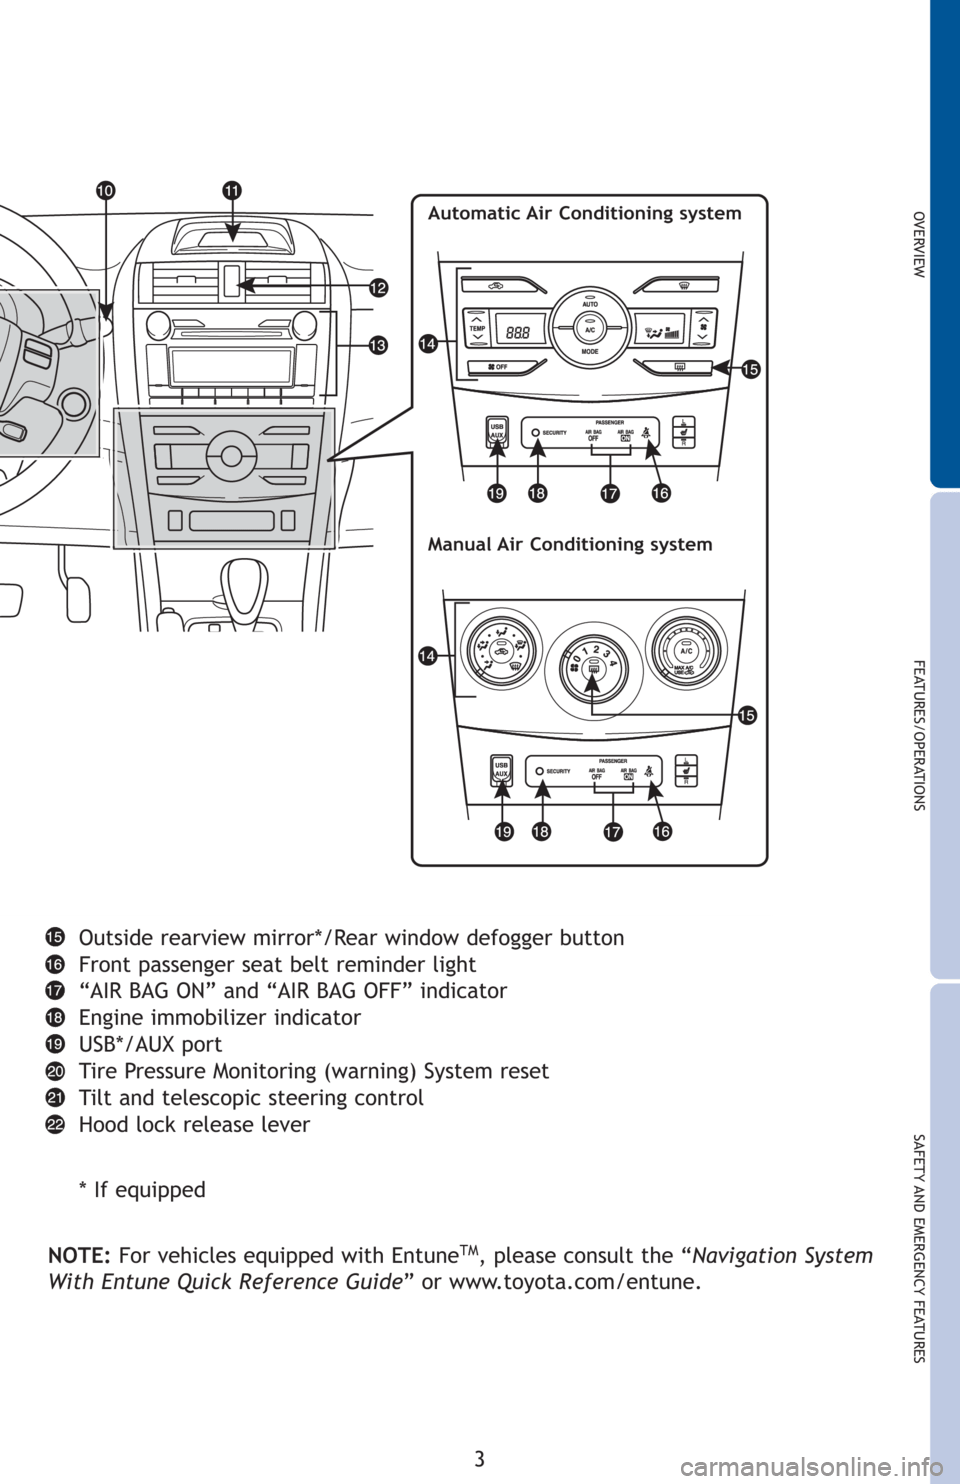 TOYOTA COROLLA 2012 10.G Quick Reference Guide